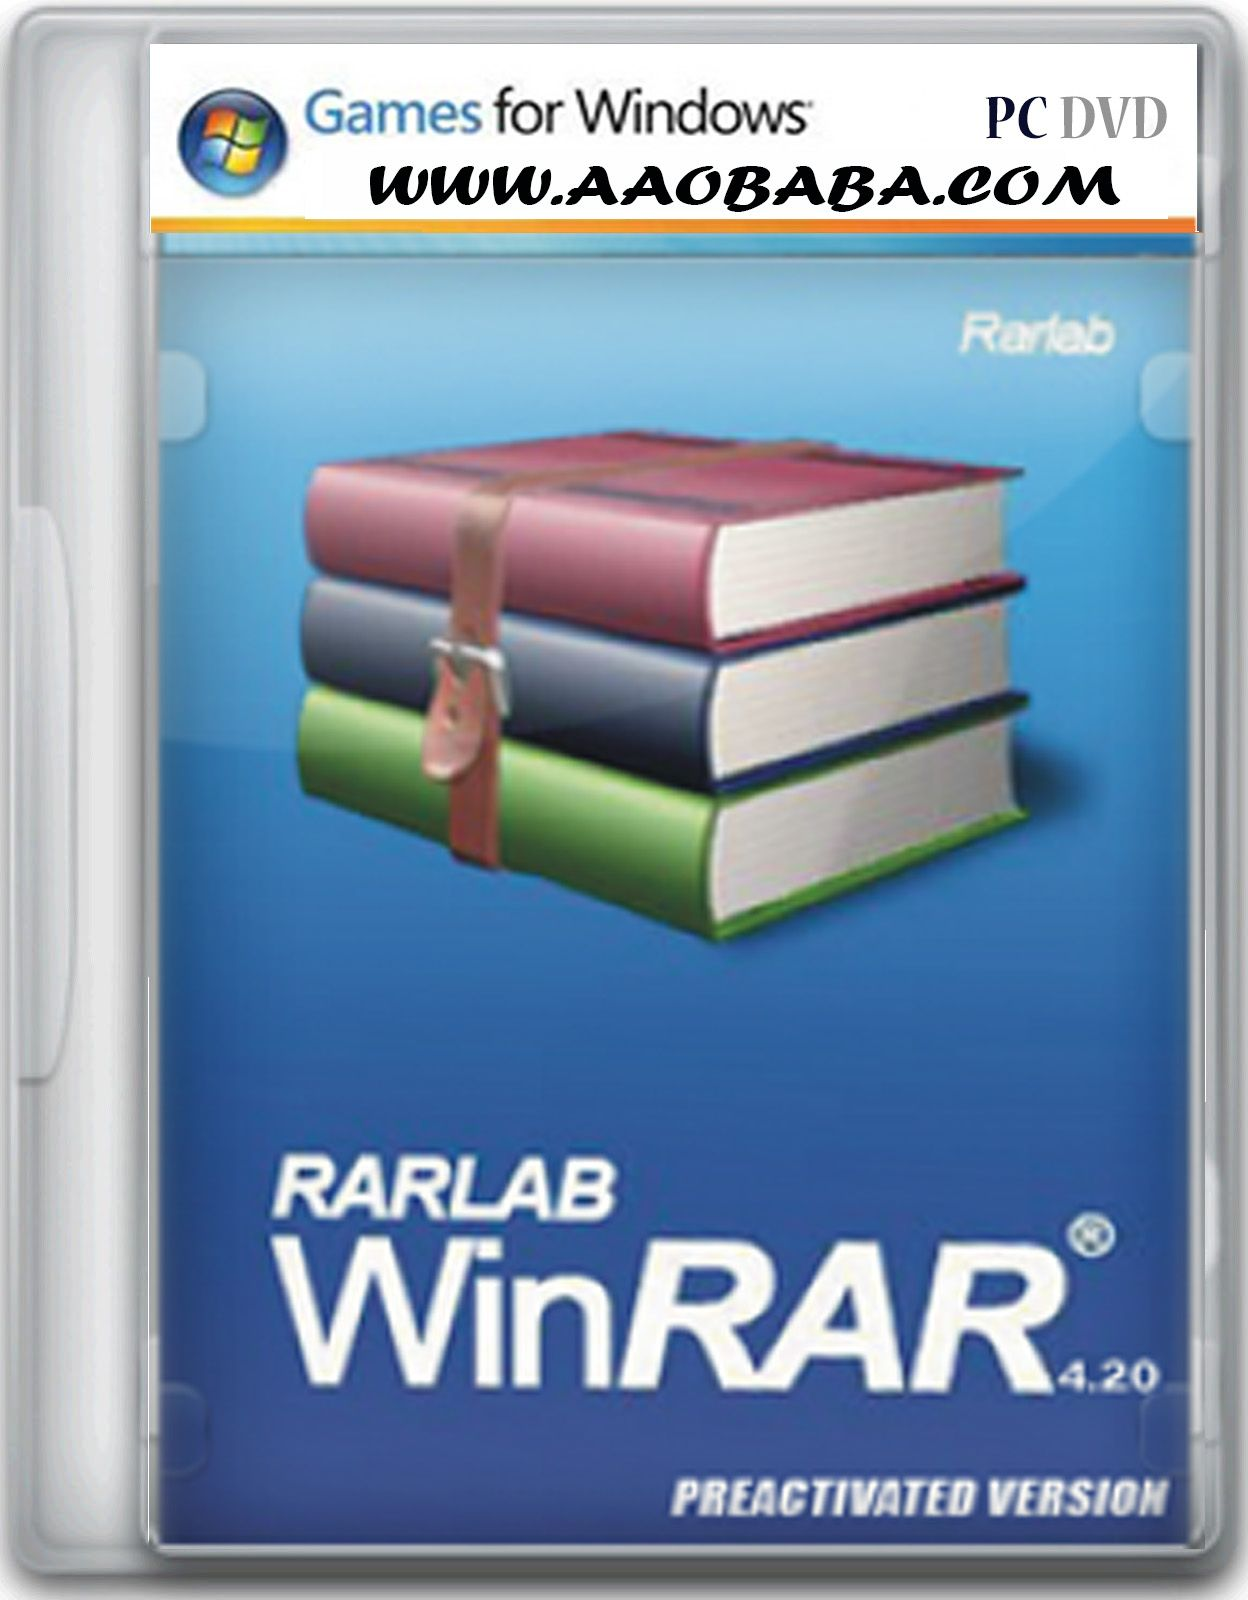 Winrar 5 0 Free Download Full Crack Version 32 Bit And 64 Bit For